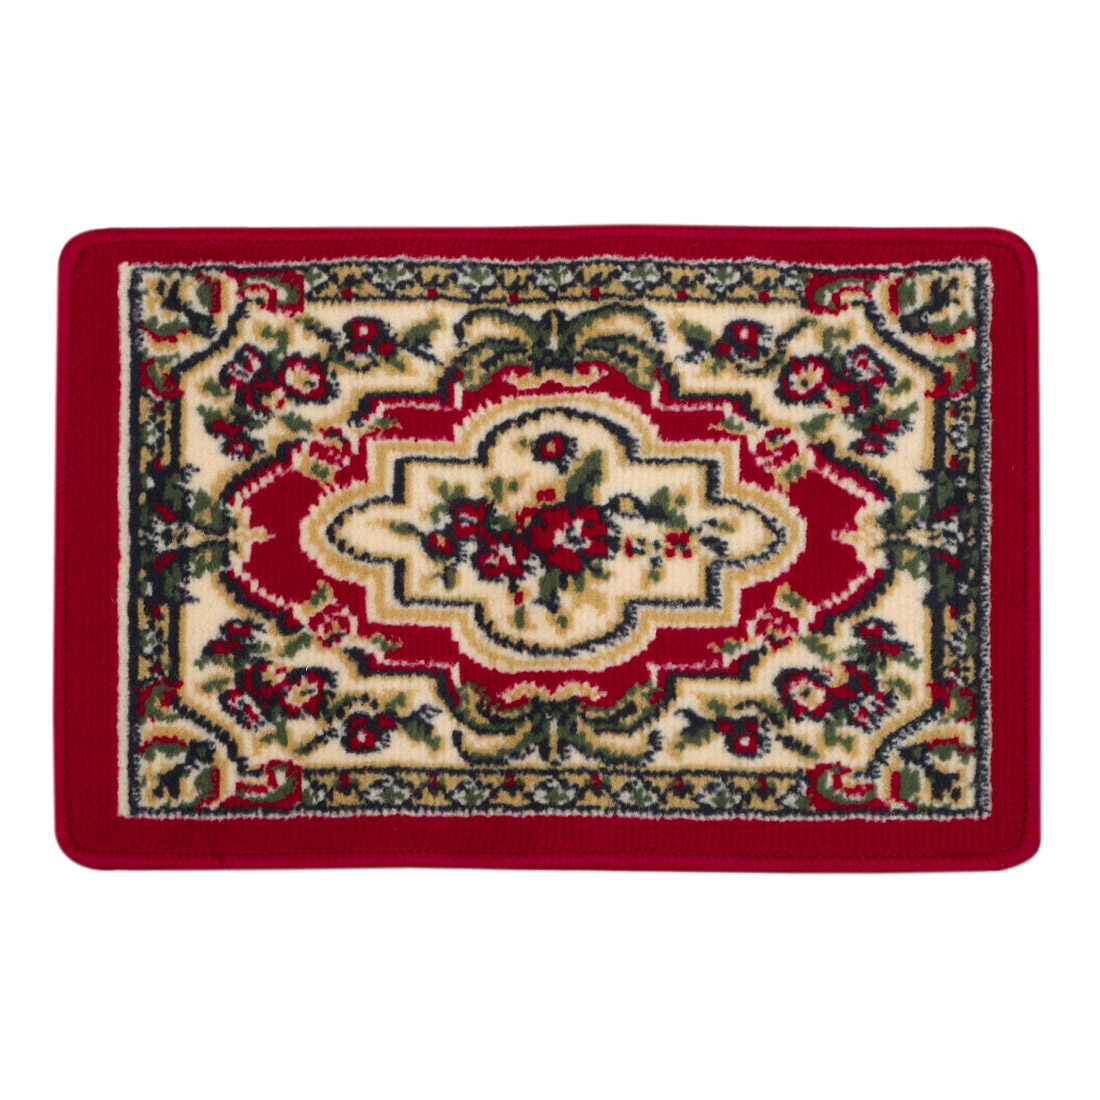 European Style Red Florals Pattern Living Room Area Rug Carpet 60cm x 40cm